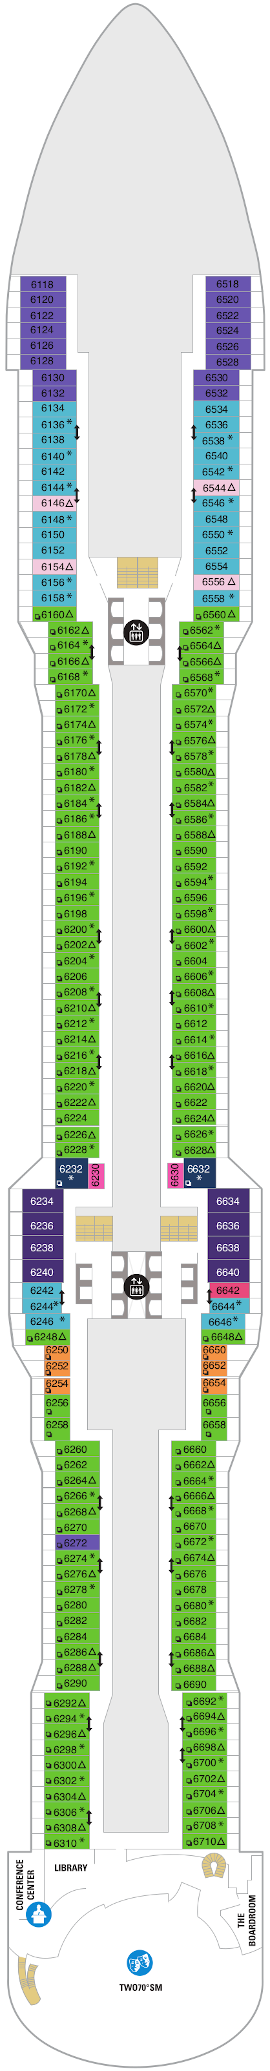 Spectrum Of The Seas Deck Six Deck Plan